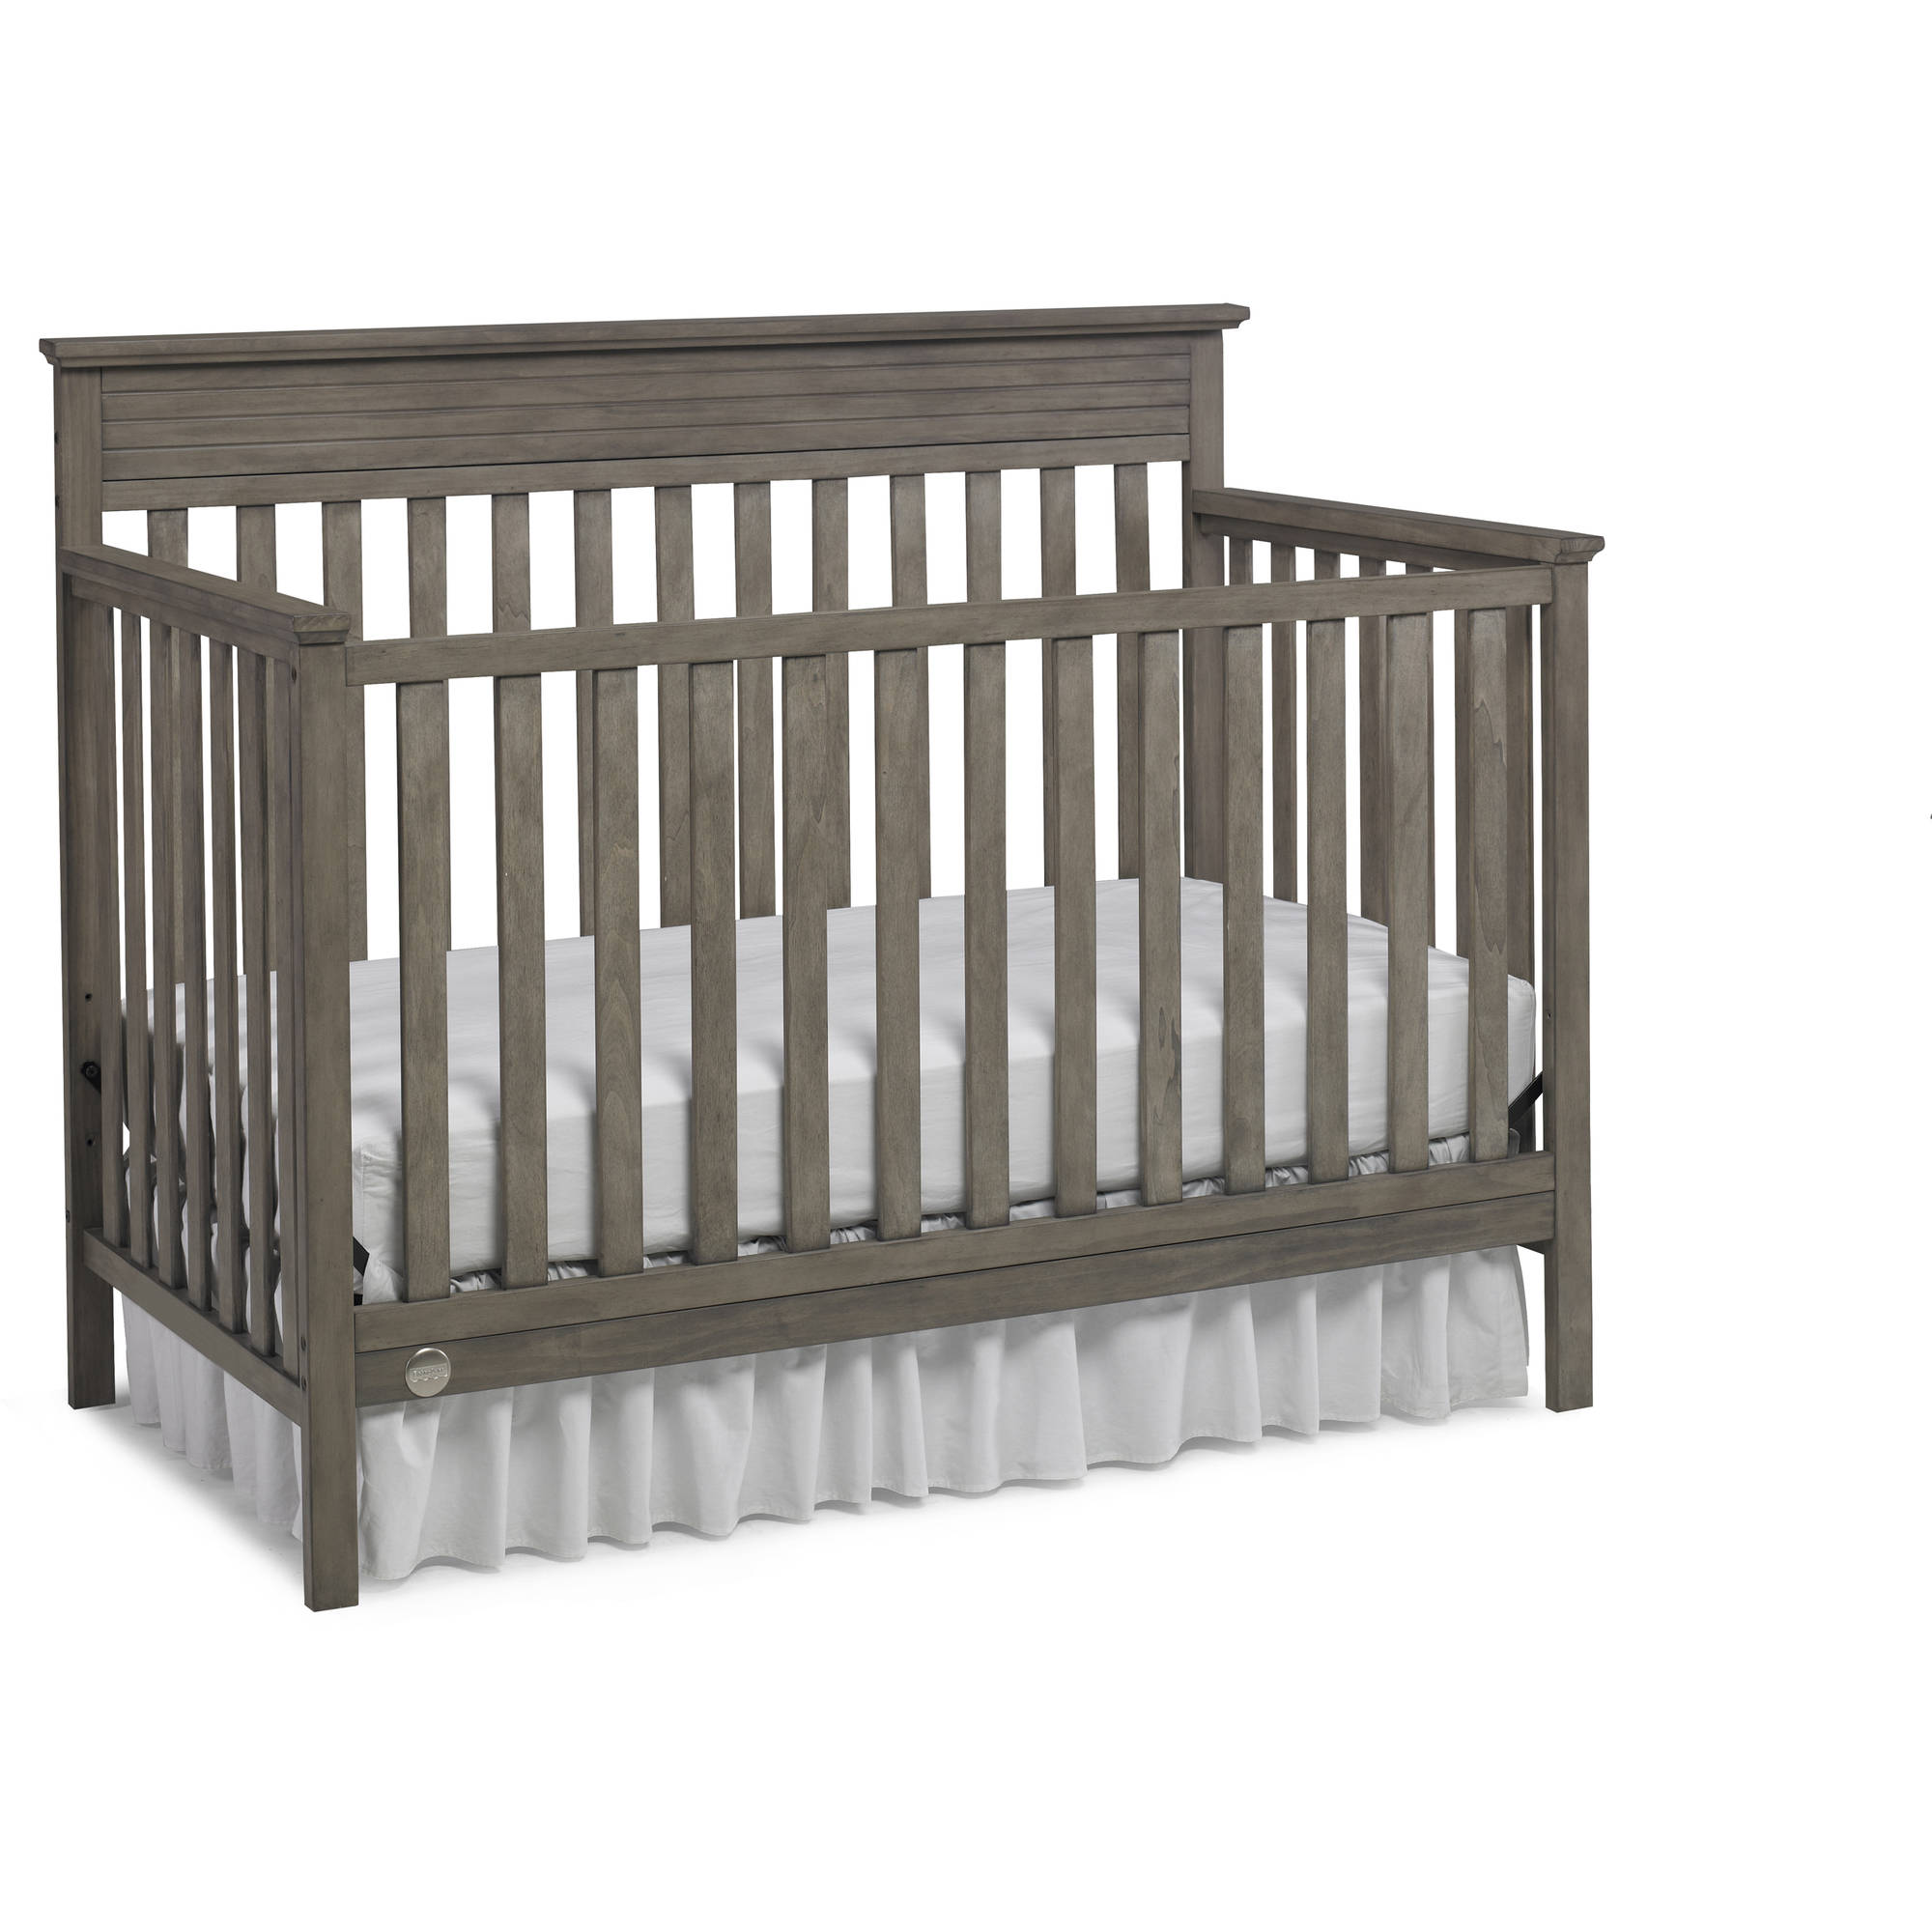 Fisher Price Newbury 4 In 1 Convertible Crib Misty Gray